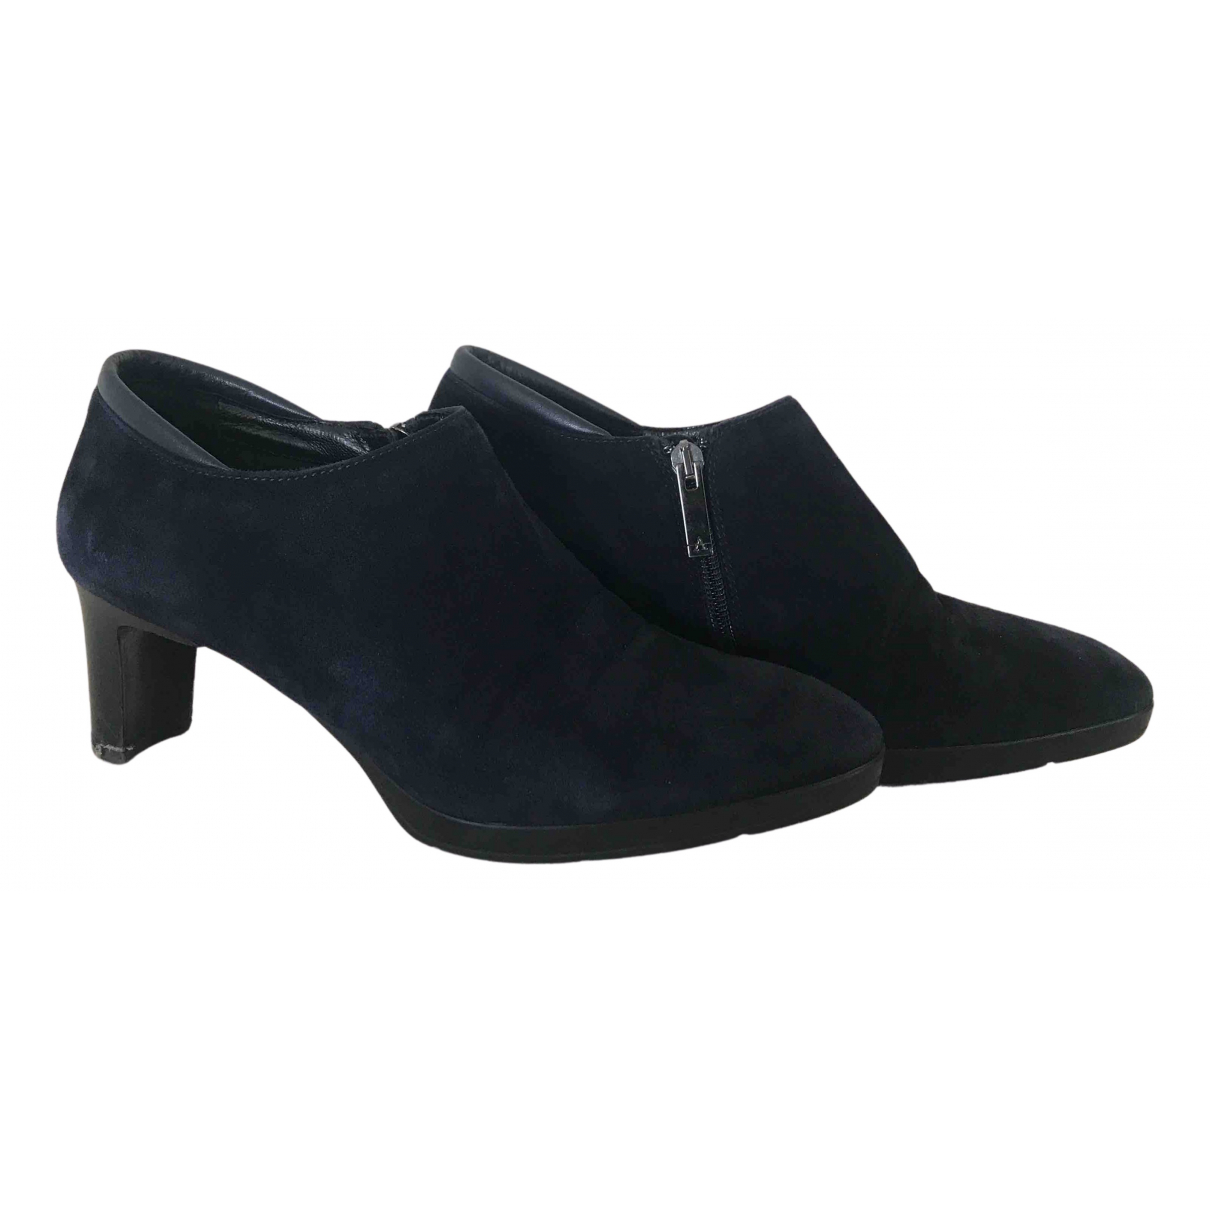 Russell & Bromley N Blue Suede Ankle boots for Women 39 EU